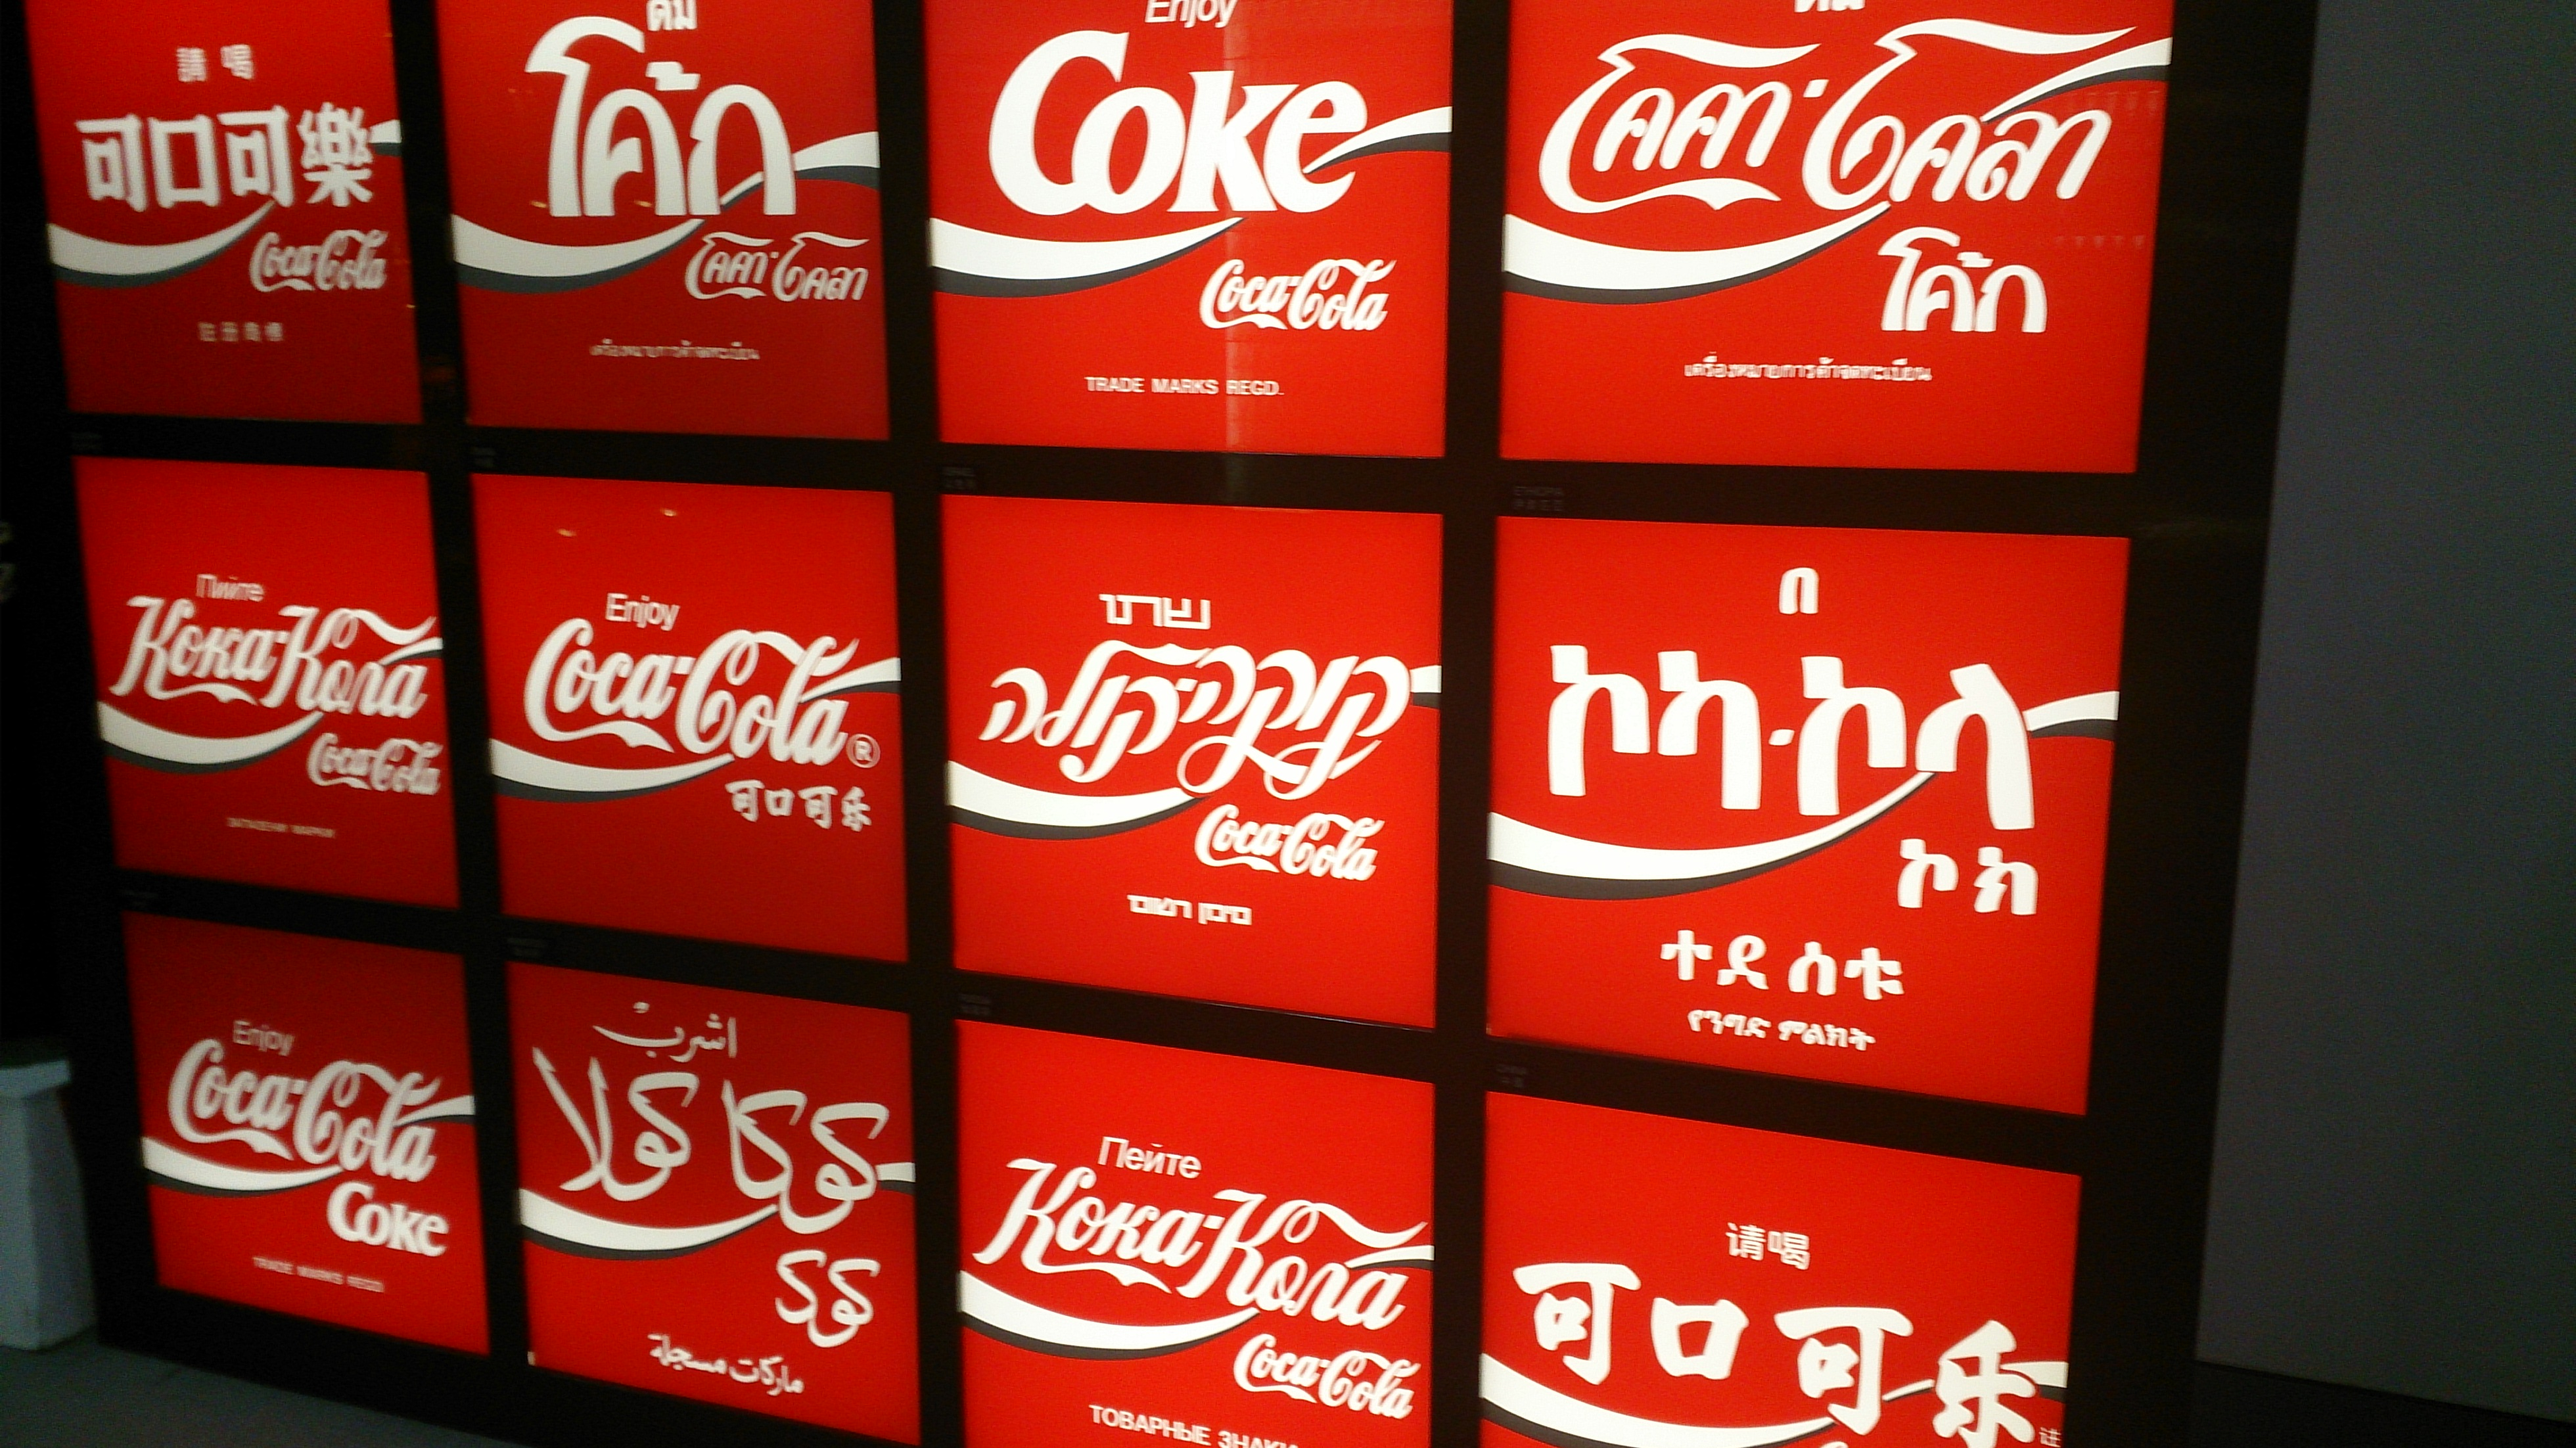 Visit to Swire Coca Cola HK in Shatin - Photo - 5